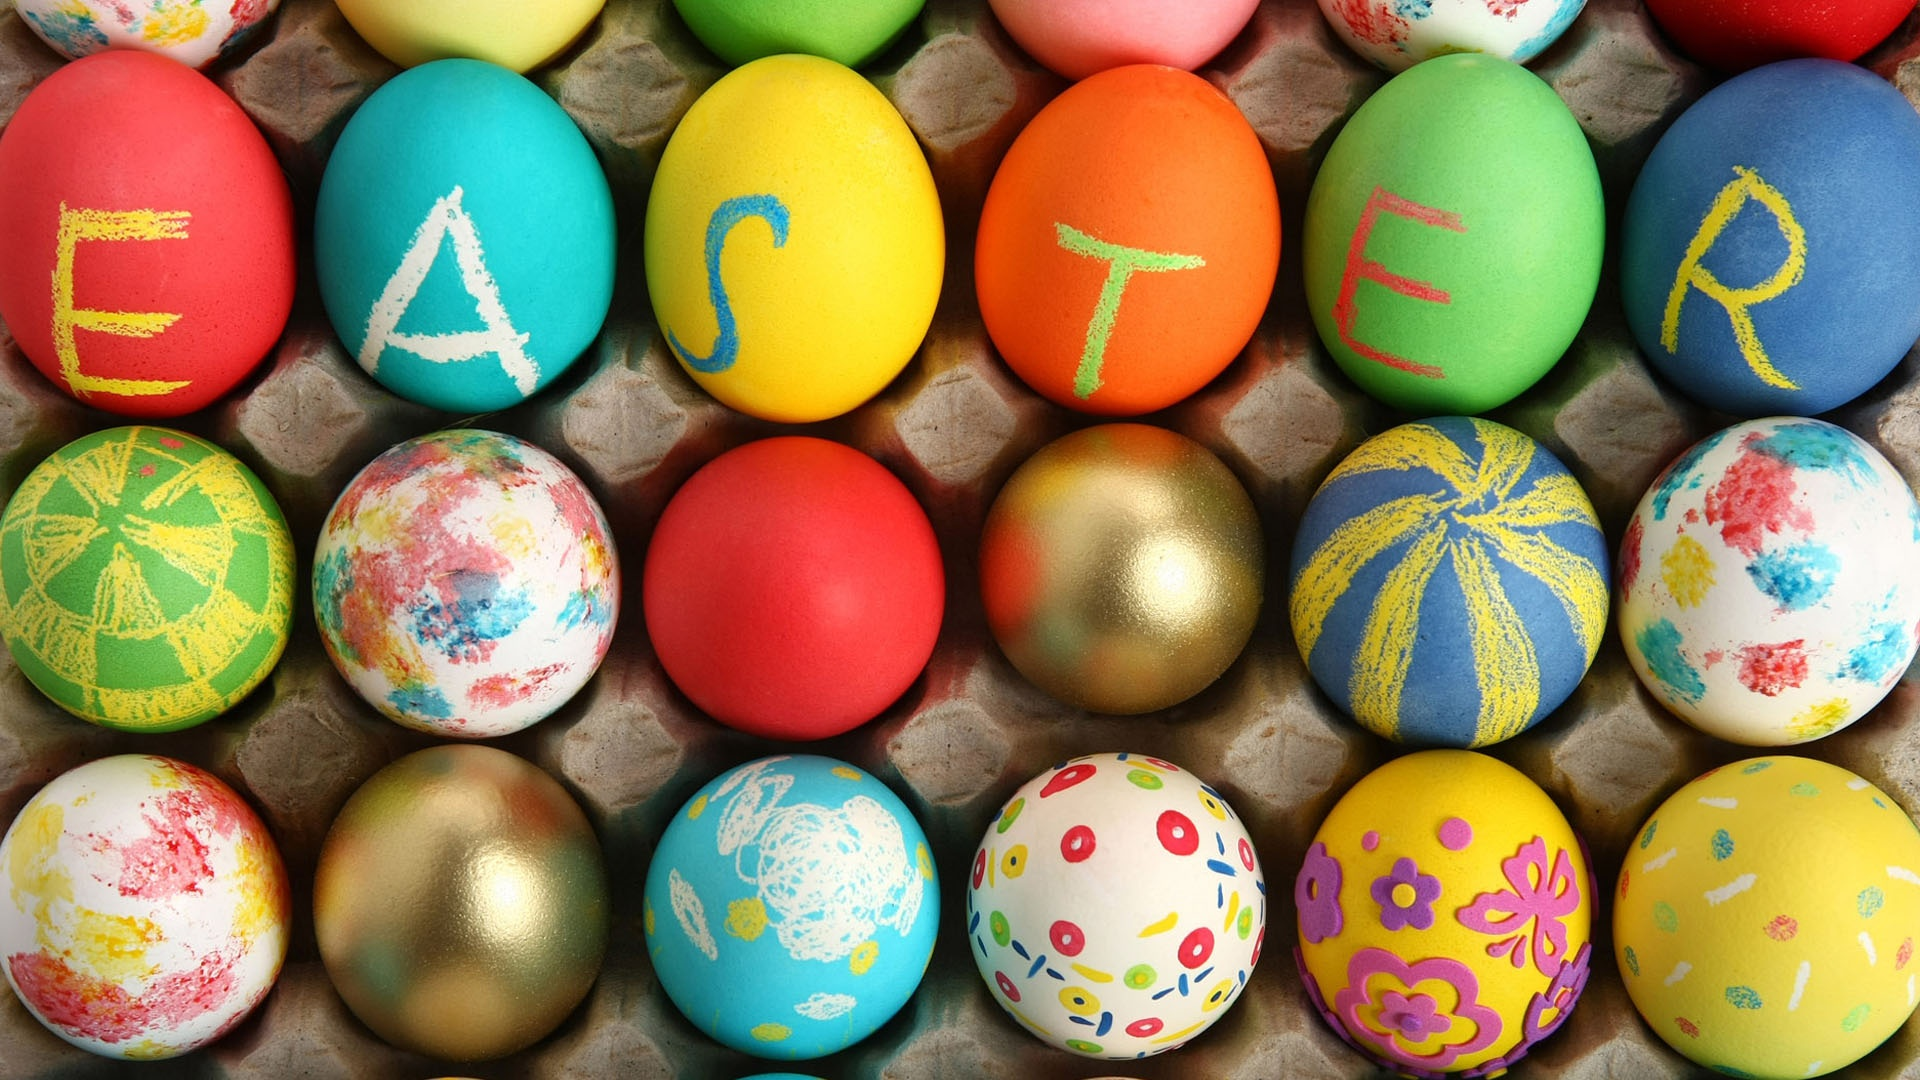 http://headingforenglish.blogspot.com/2015/03/easter-eggs.html